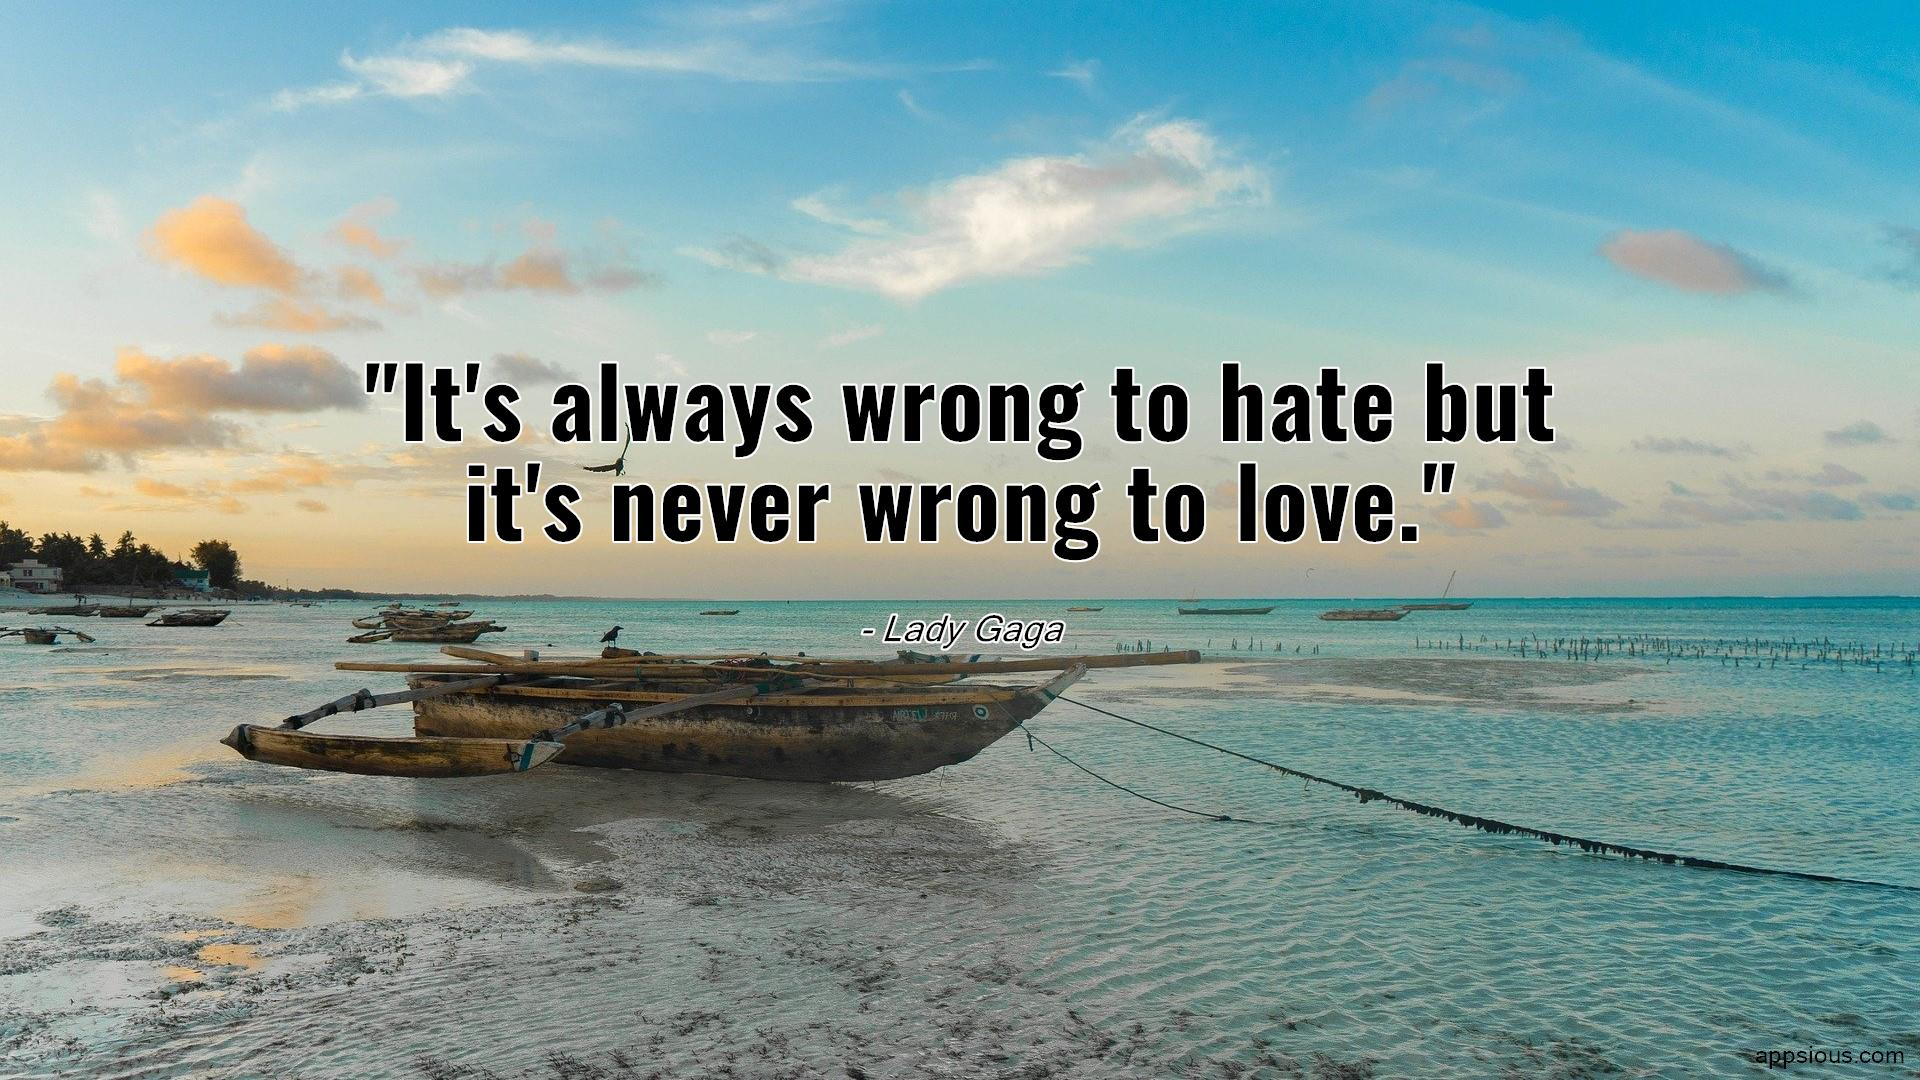 It's always wrong to hate but it's never wrong to love.